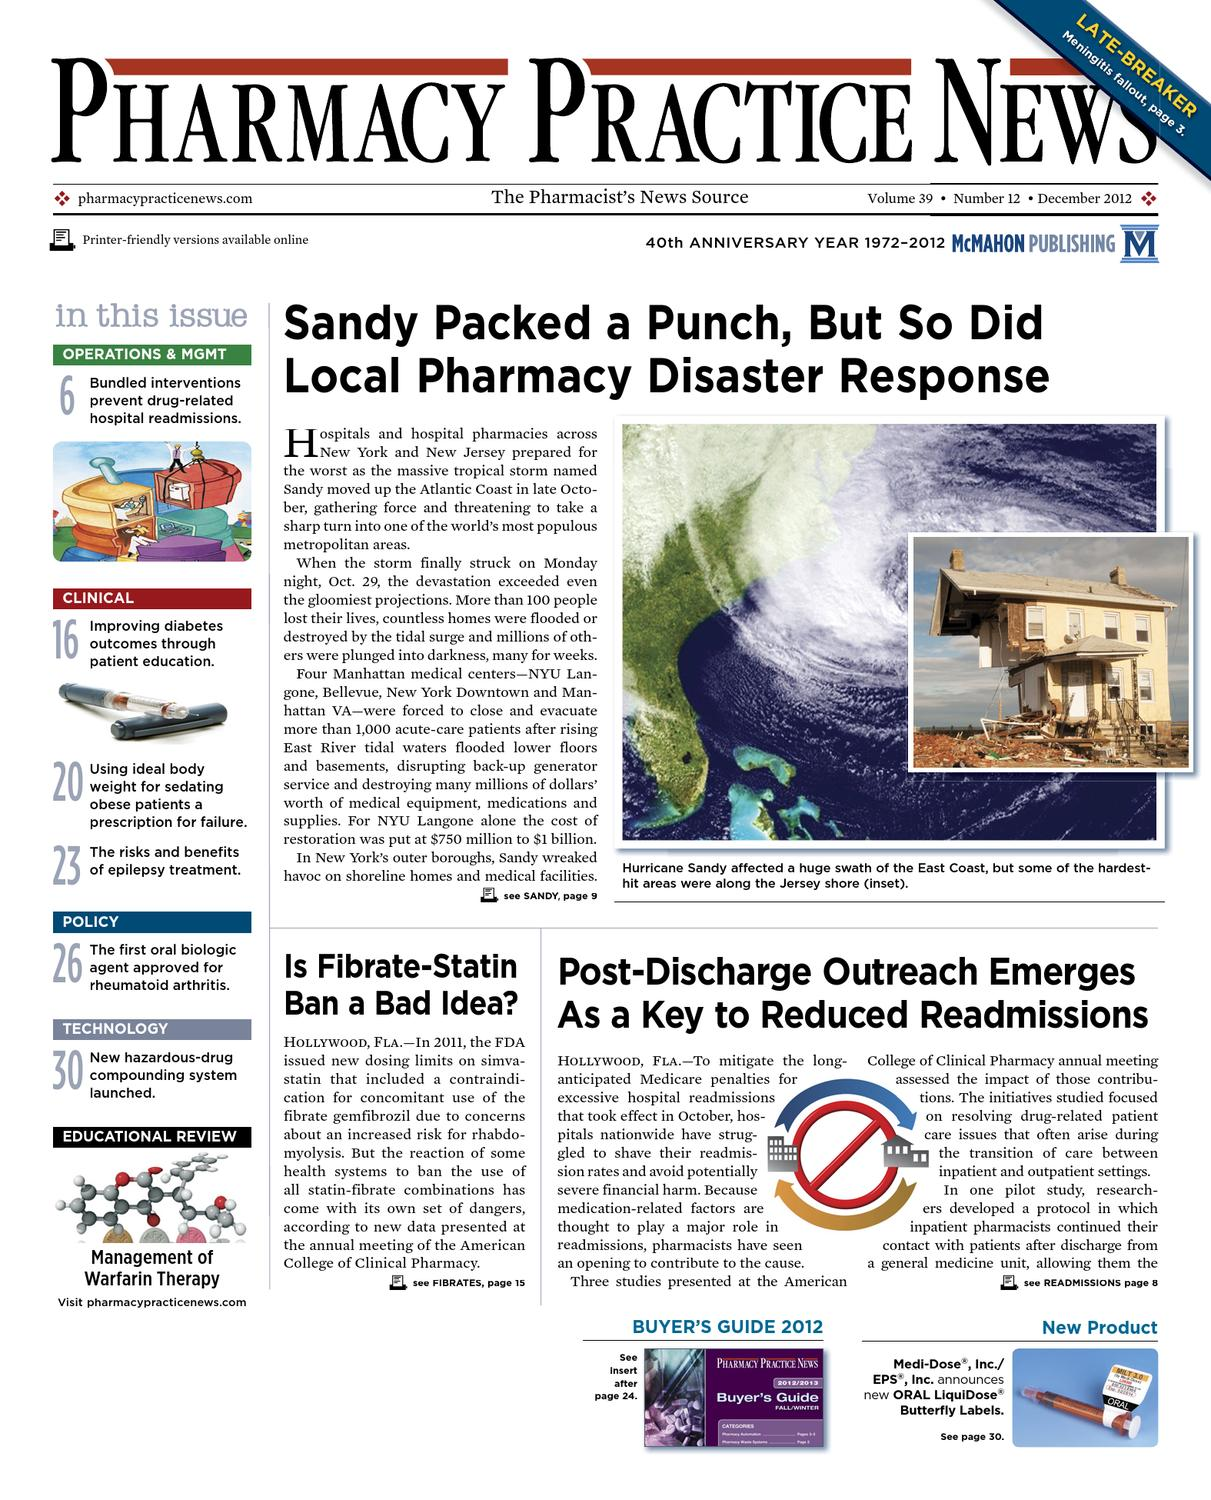 The December 2012 Digital Edition Of Pharmacy Practice News